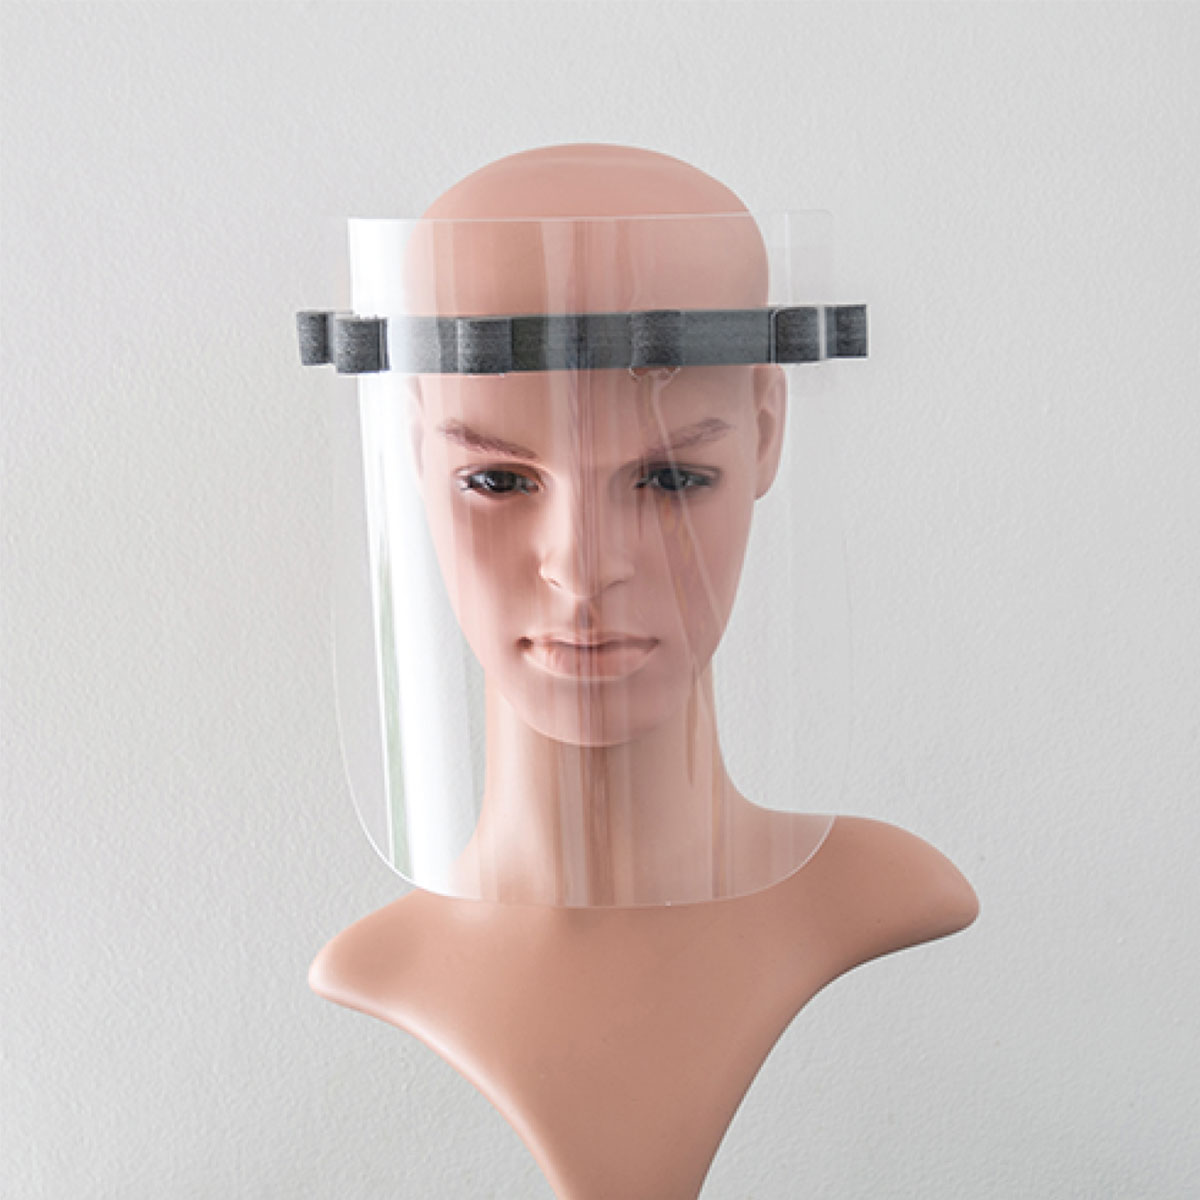 VForm Near-Fit Face Shield: Product Displayed: VF5N260F225